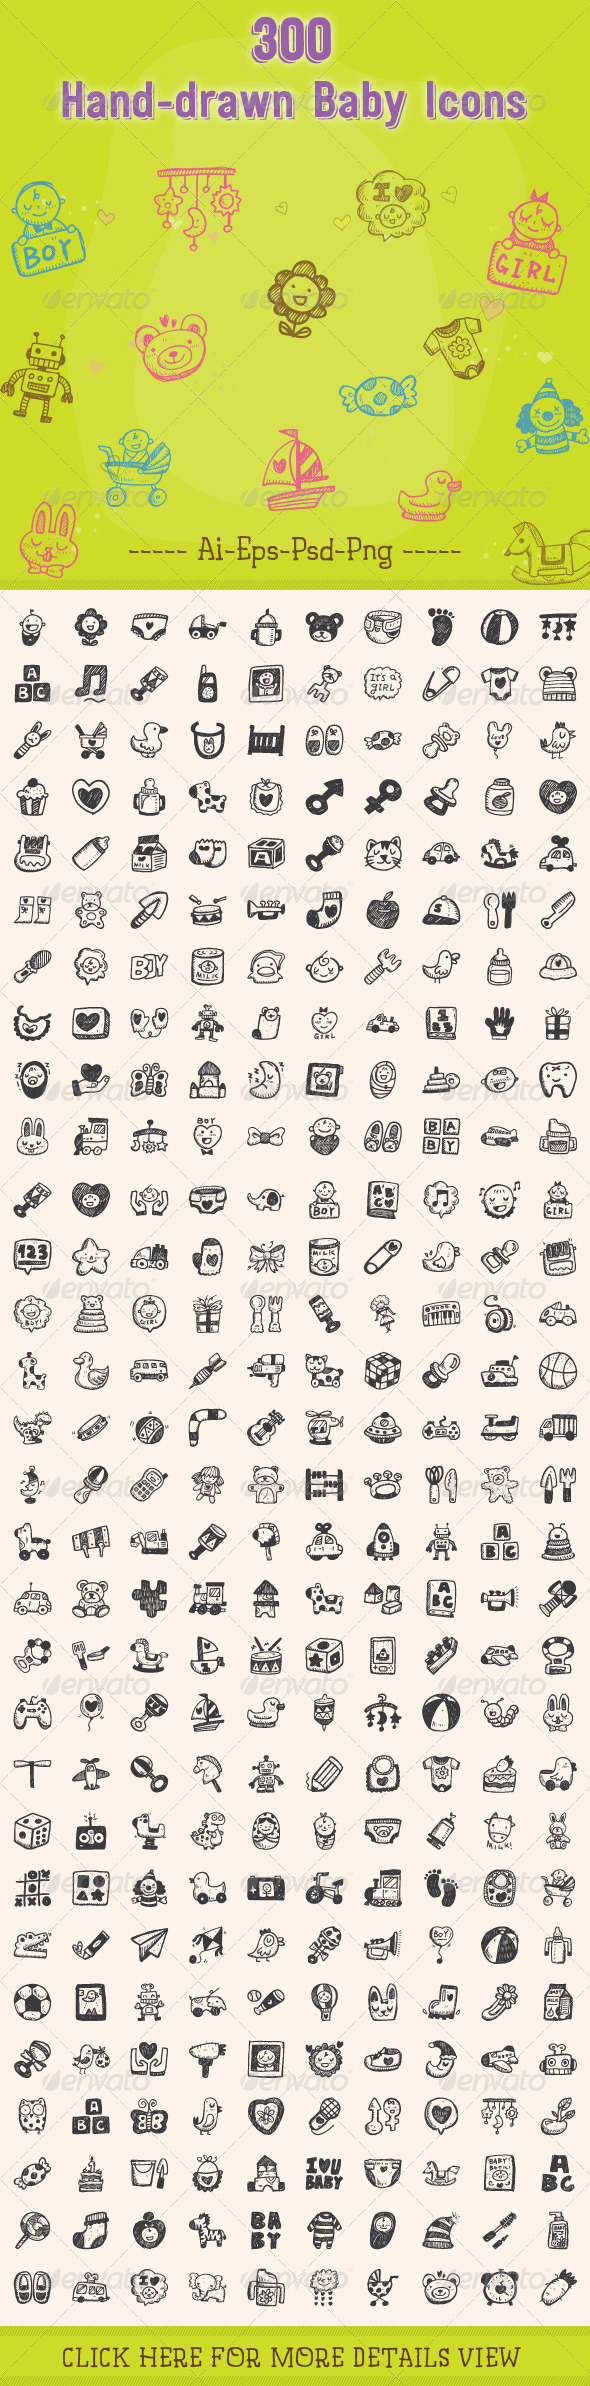 GraphicRiver 300 Hand Drawn Baby Icons 8390824